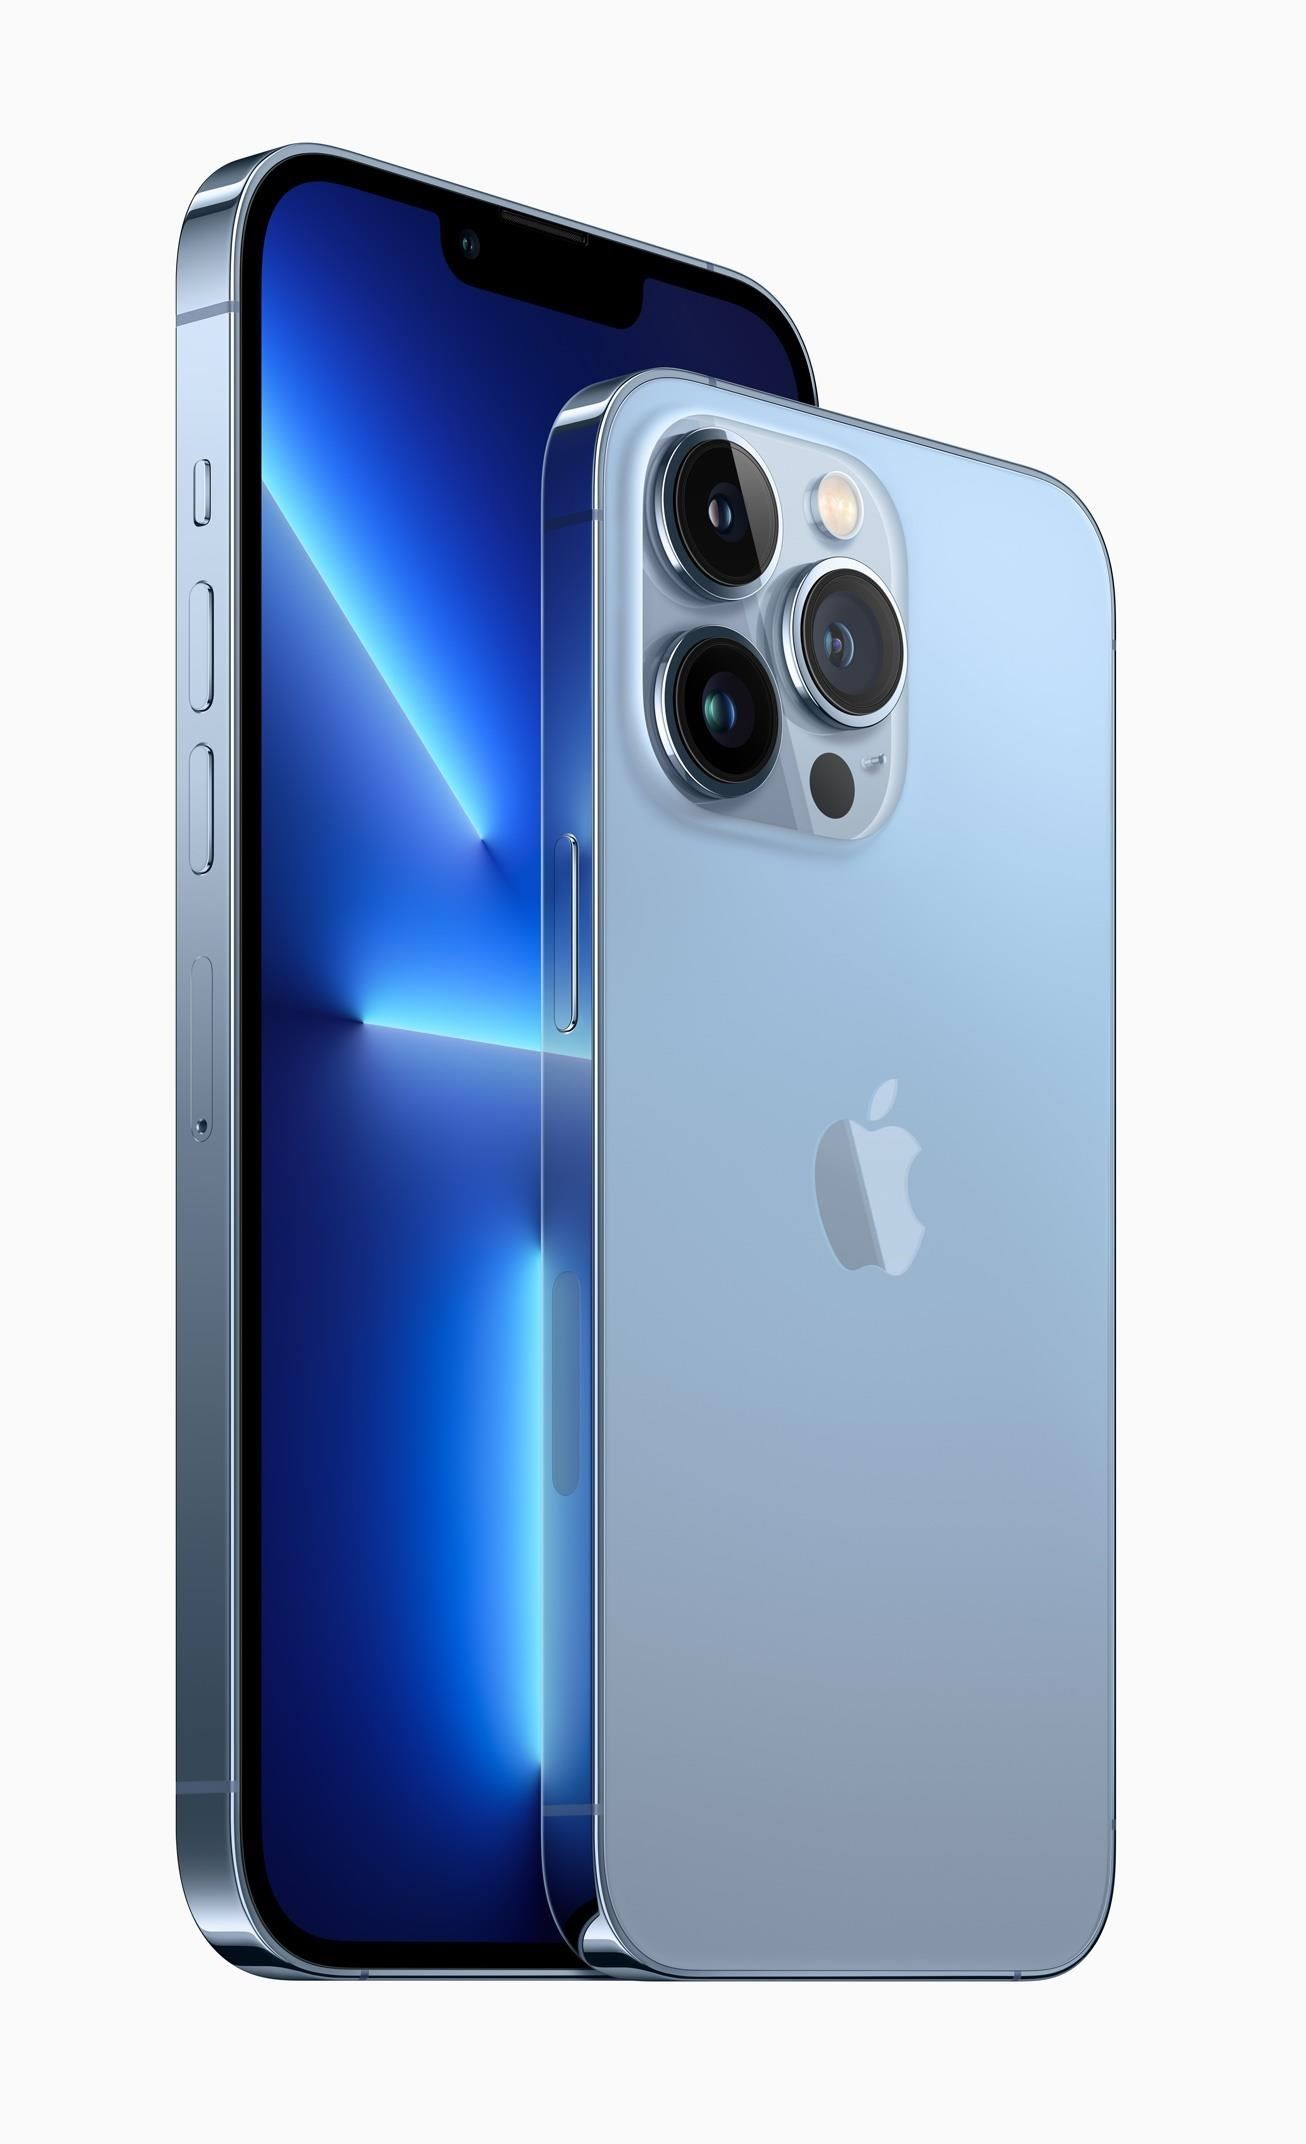 Apple Makes iPhone 13 a Serious Filmmaking Device with Cinematic Mode, ProRes Support for Pro Models